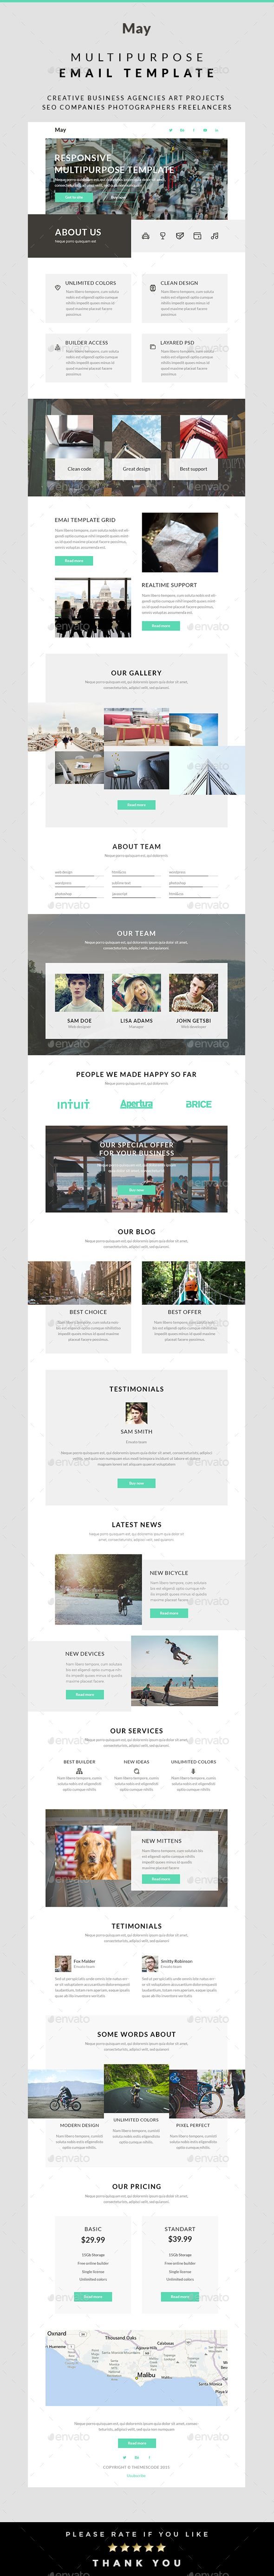 May – Multipurpose Email Template | Template, Fonts and Email design